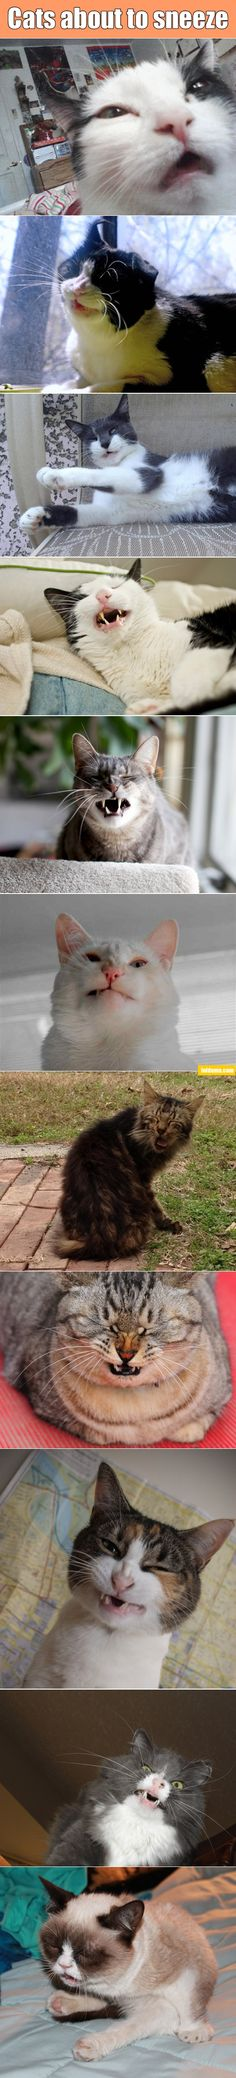 "LOL - this is the most random set of cat photos I've seen yet. ""Cats about to sneeze."""